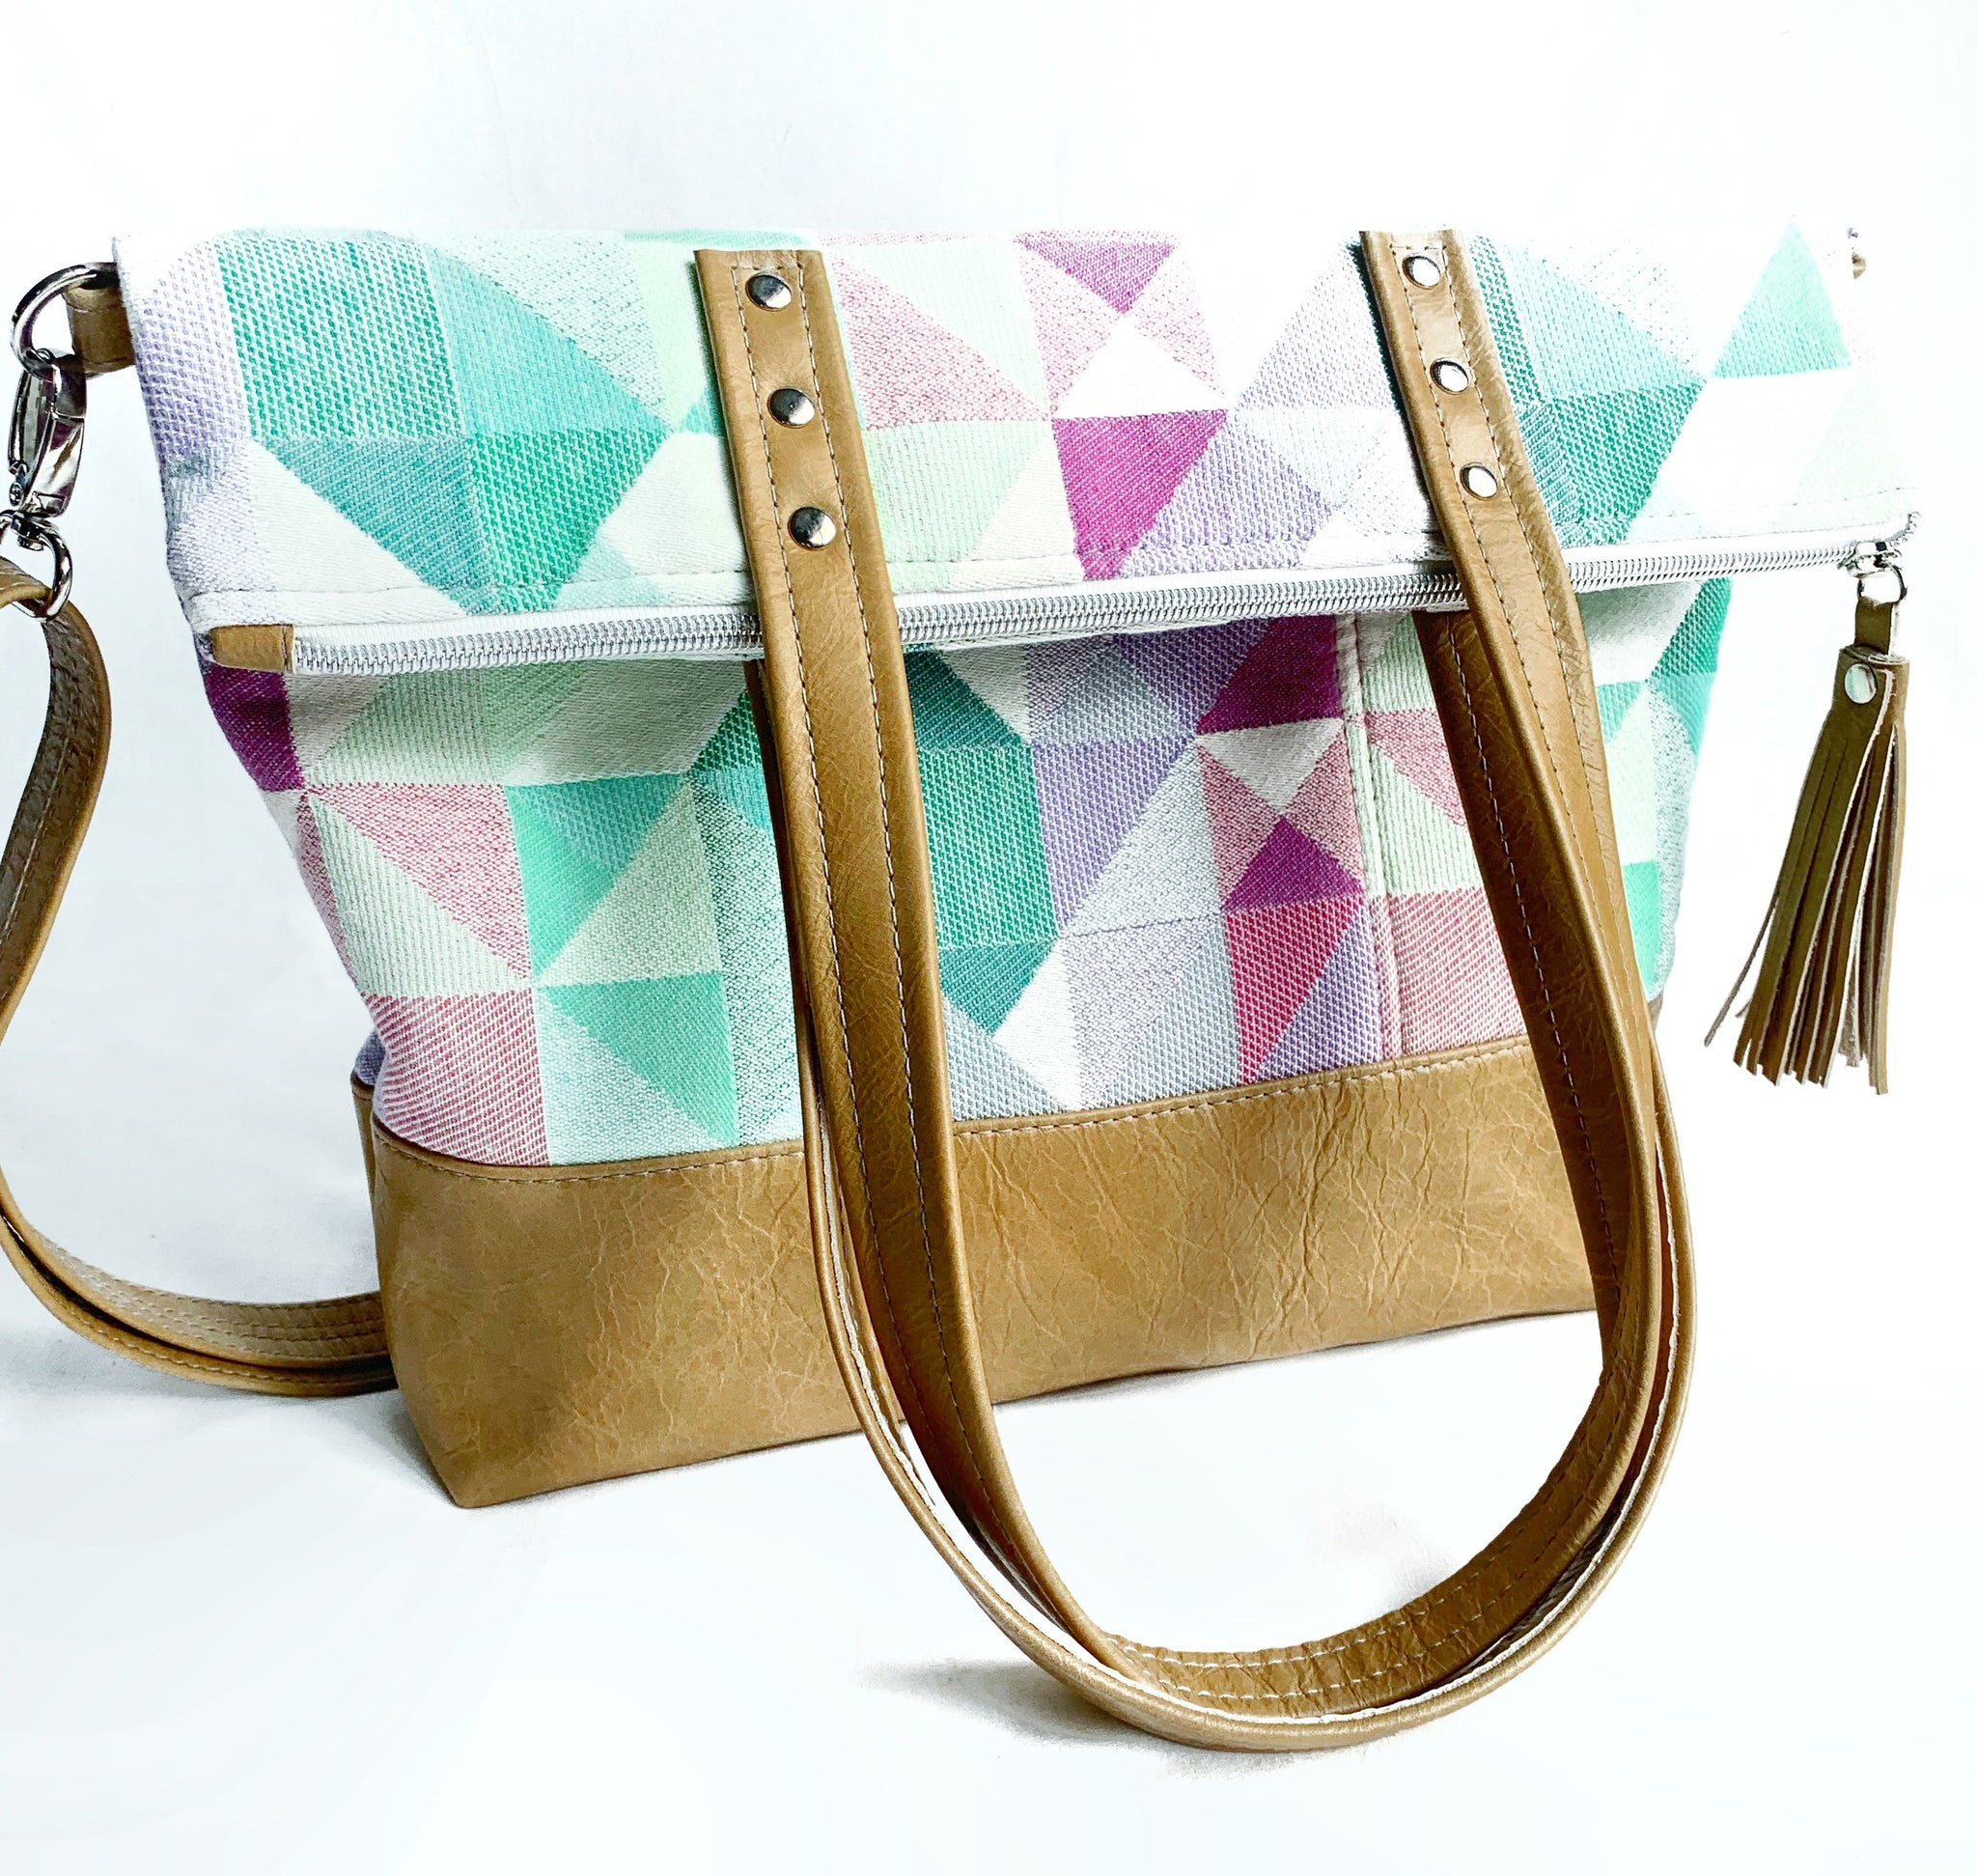 leather bag twofer tote by pia riley of iqueenie ankalia mako garden city wrap